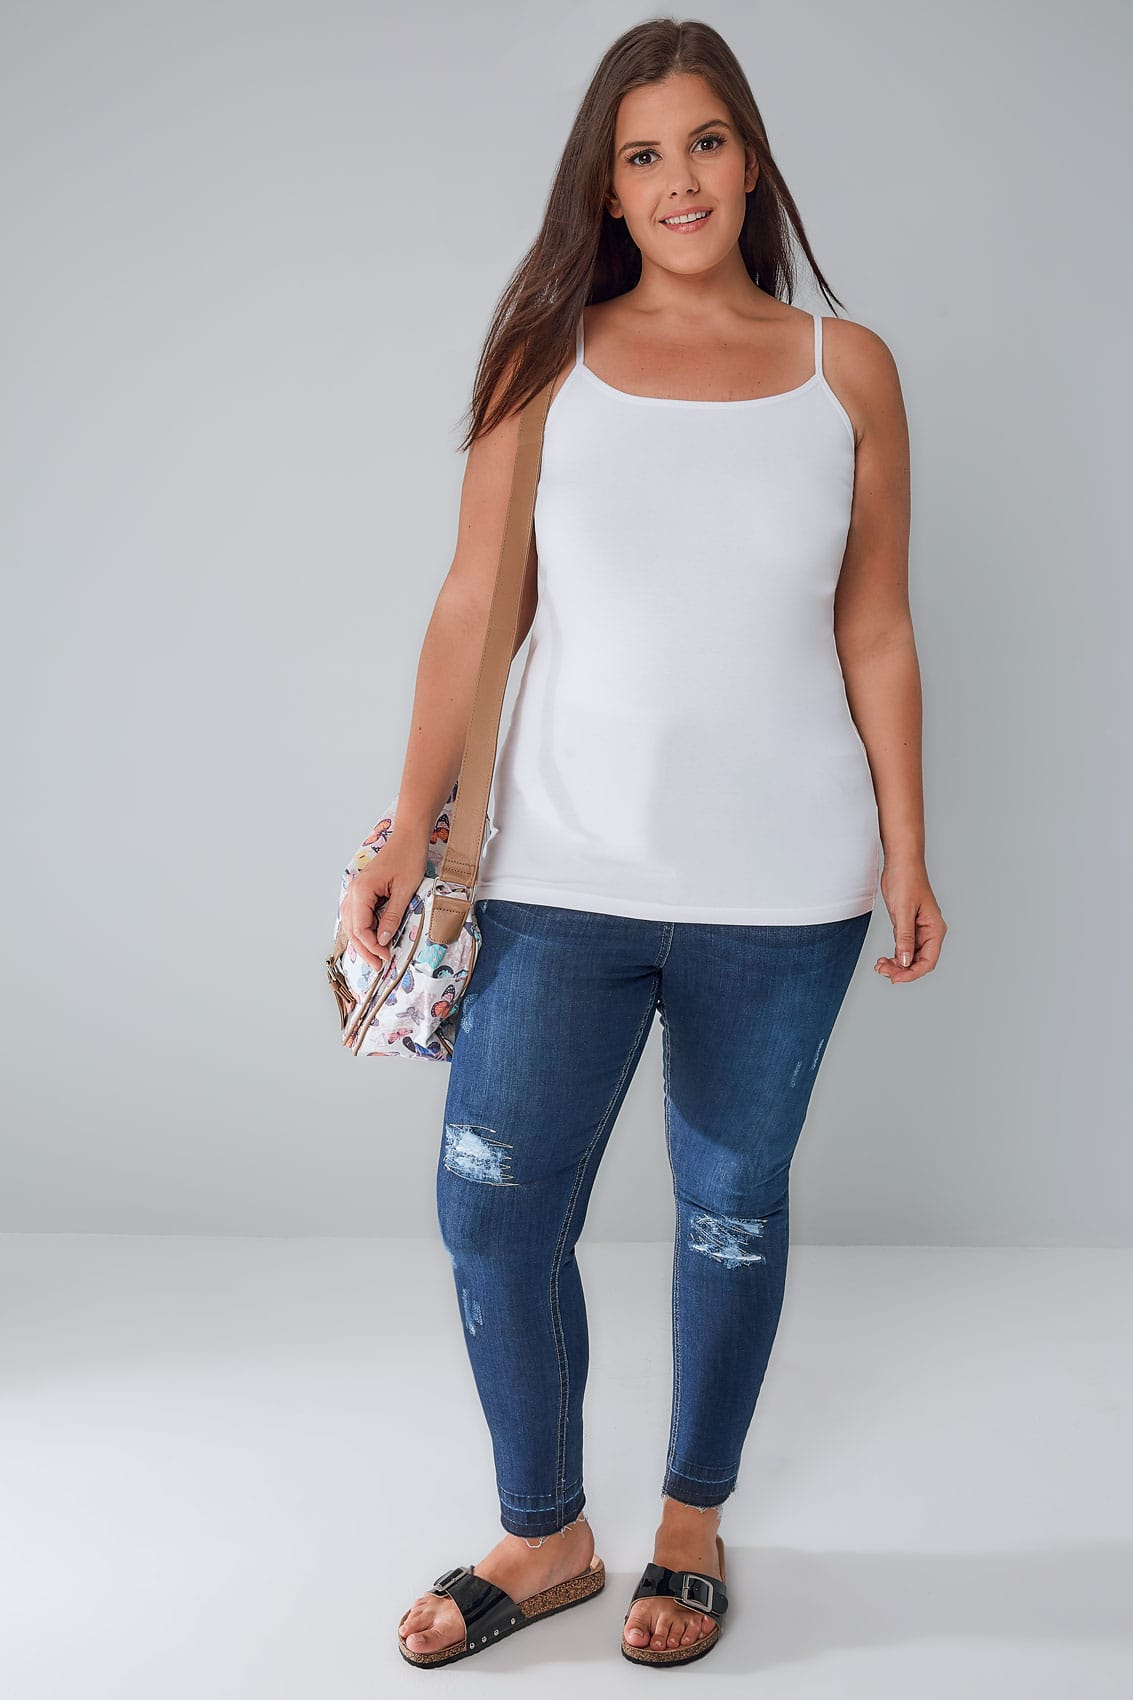 Find Vests & camisoles, white from the Womens department at Debenhams. Shop a wide range of Tops products and more at our online shop today.